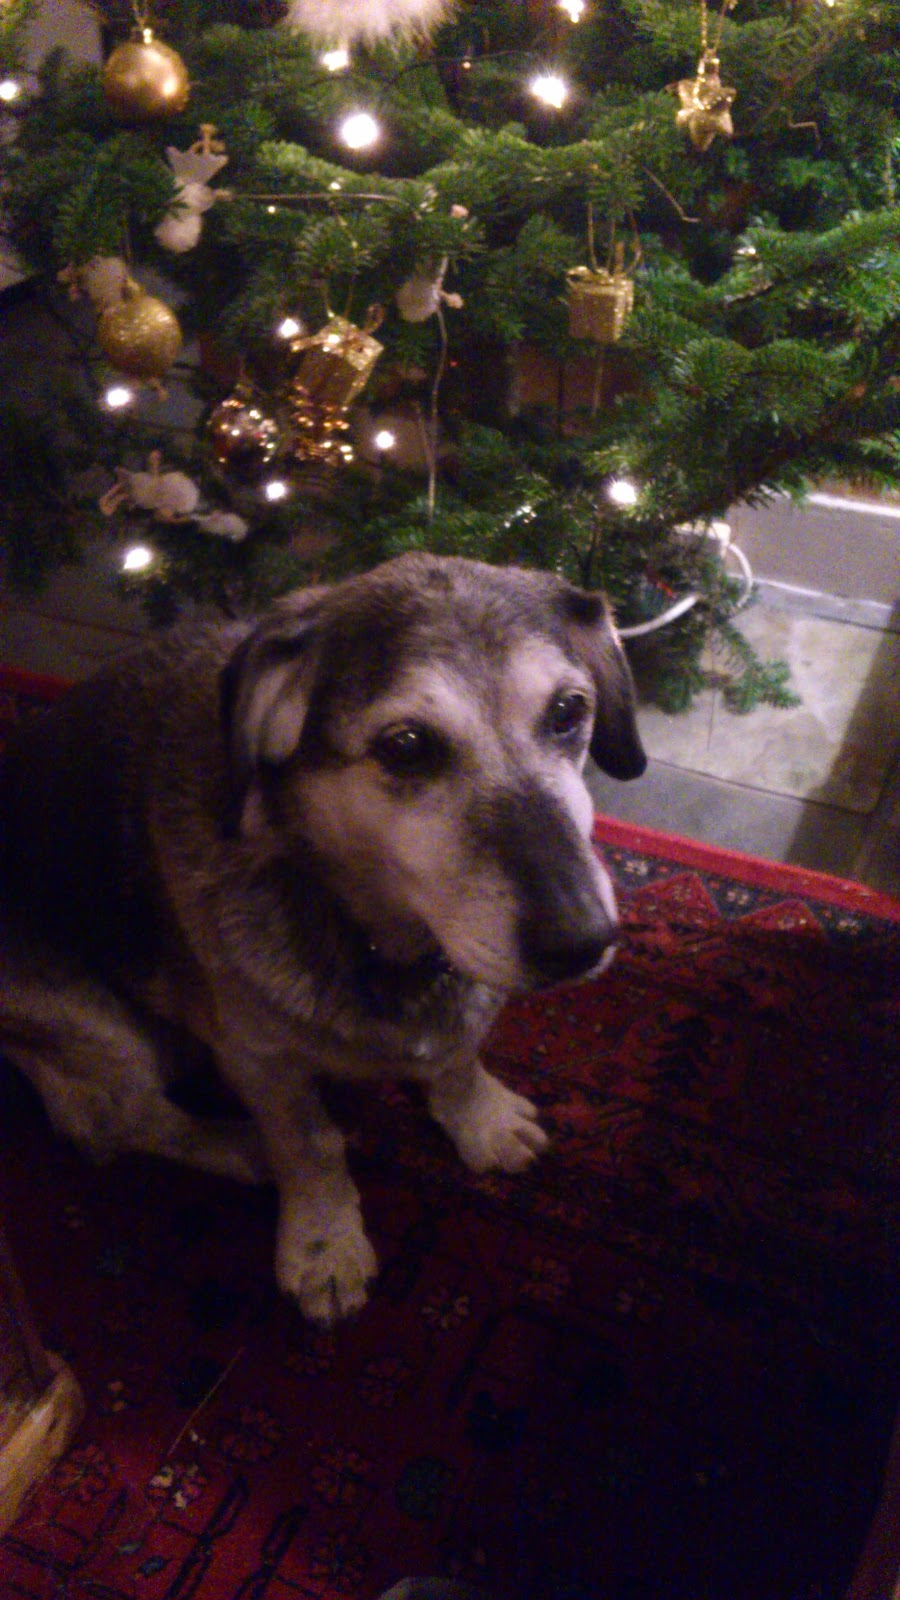 Jemma the dog by the Christmas tree